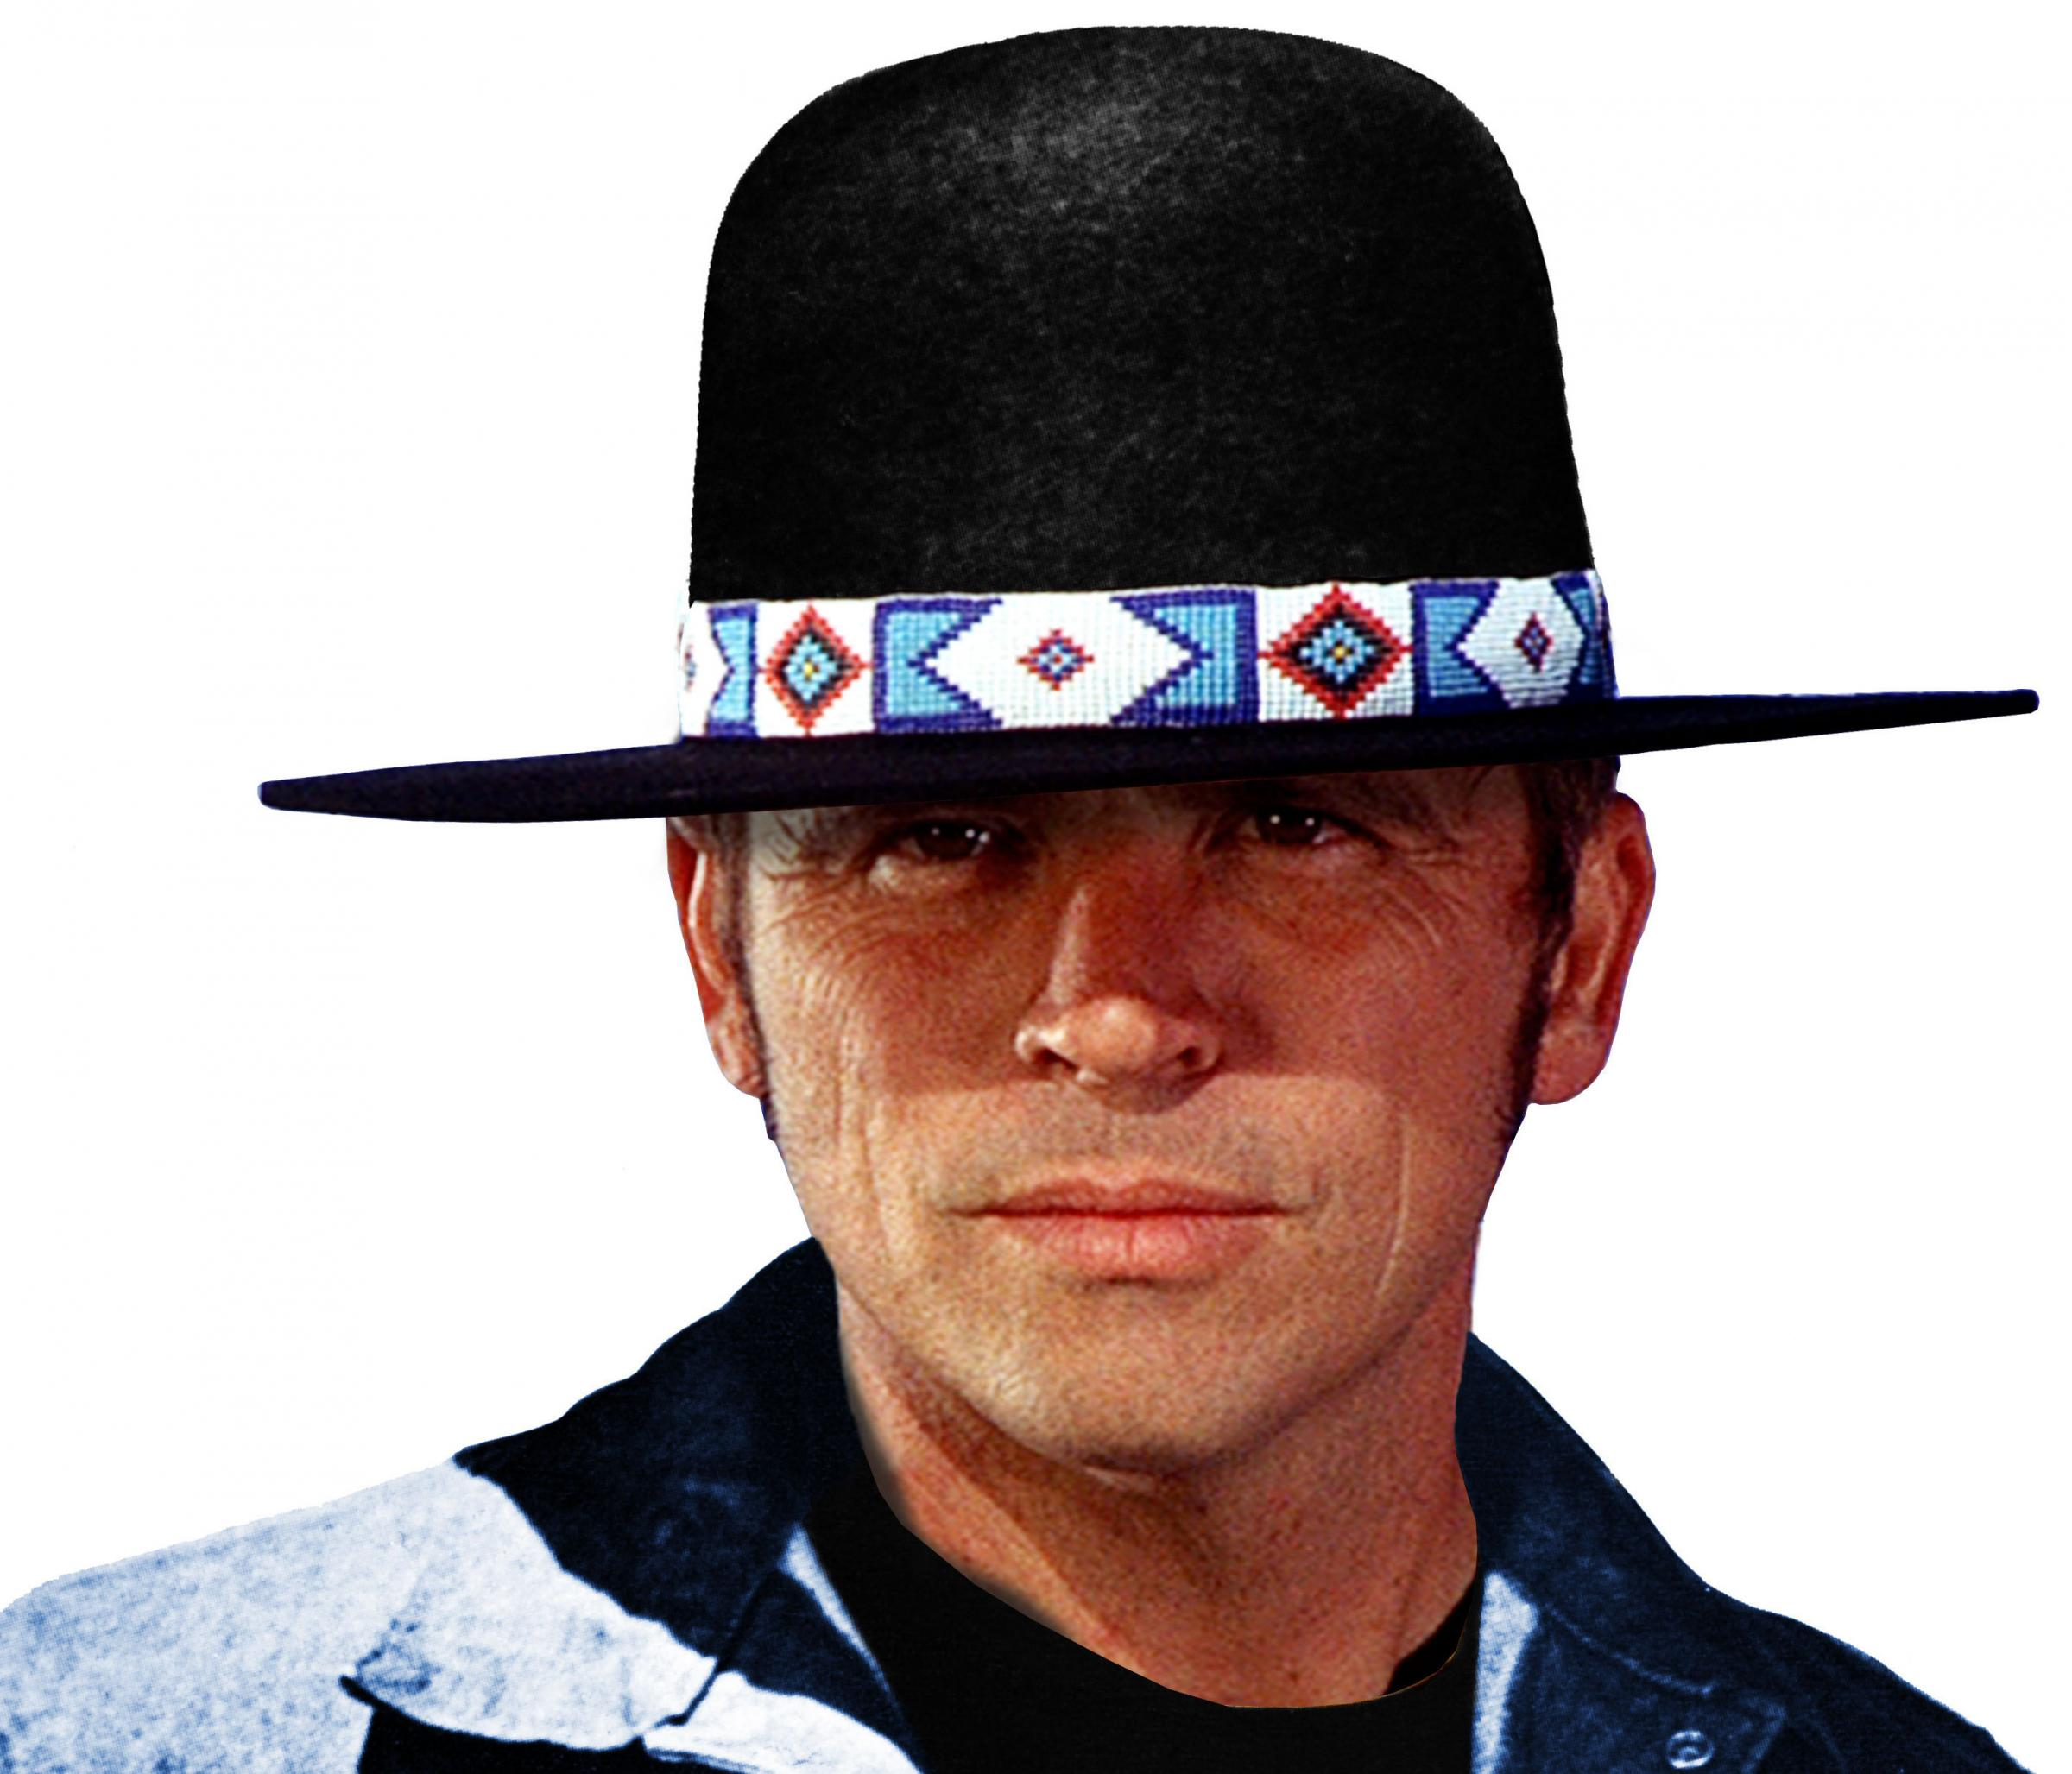 I'm surprised no one has yet resurrected Billy Jack to punch Nazis